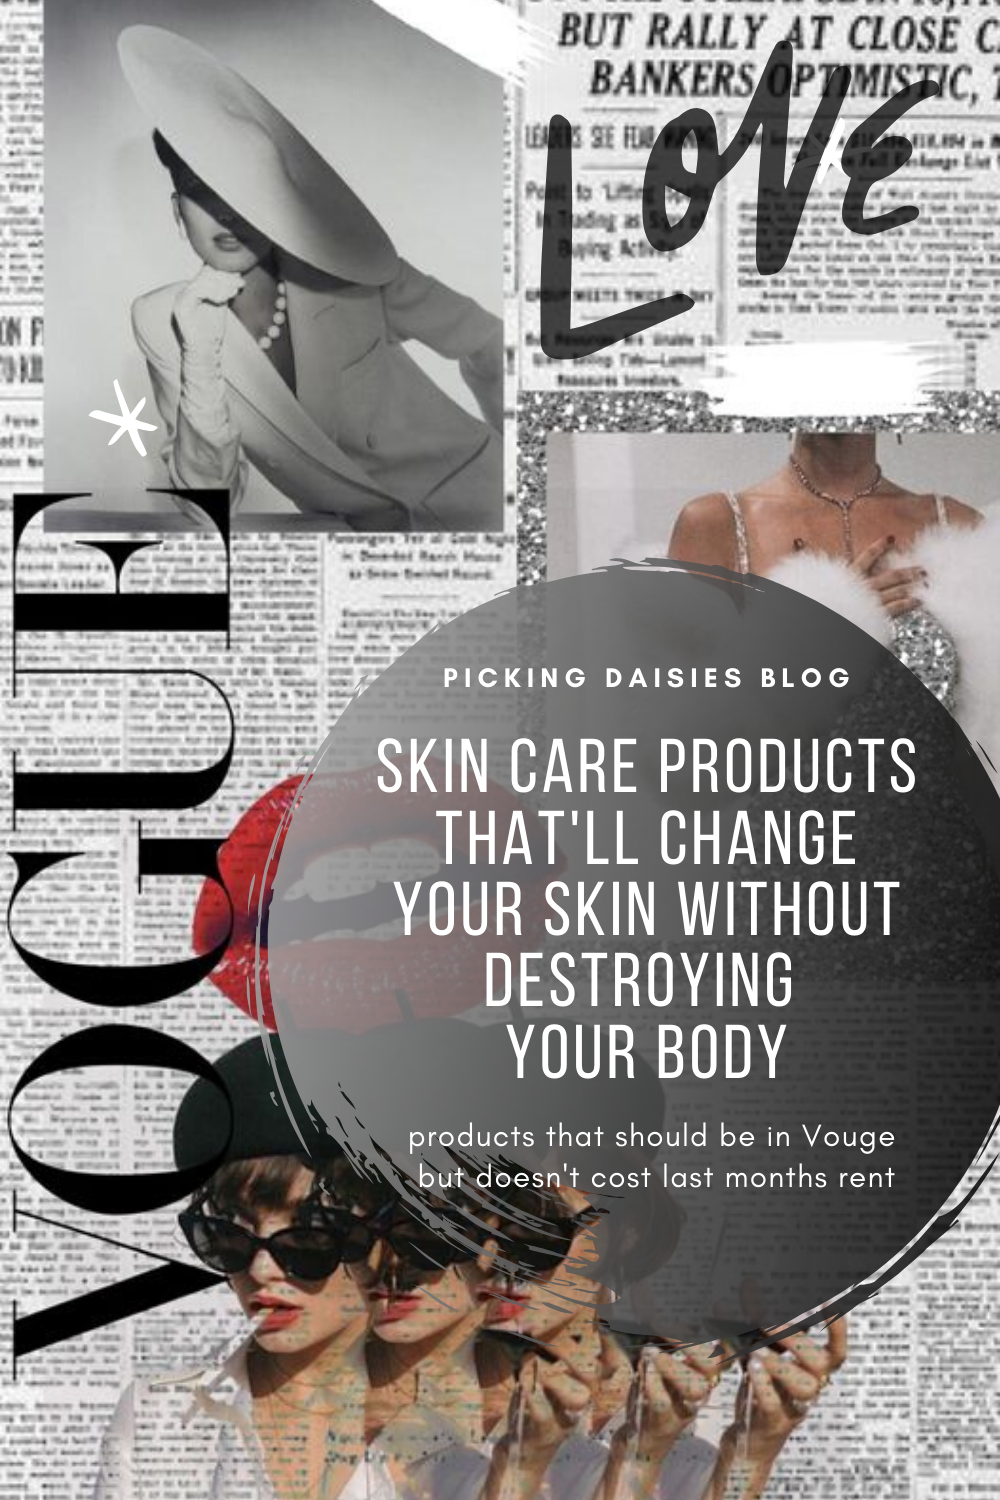 Skin Care Products That'll Change Your Skin Without Destroying Your Body